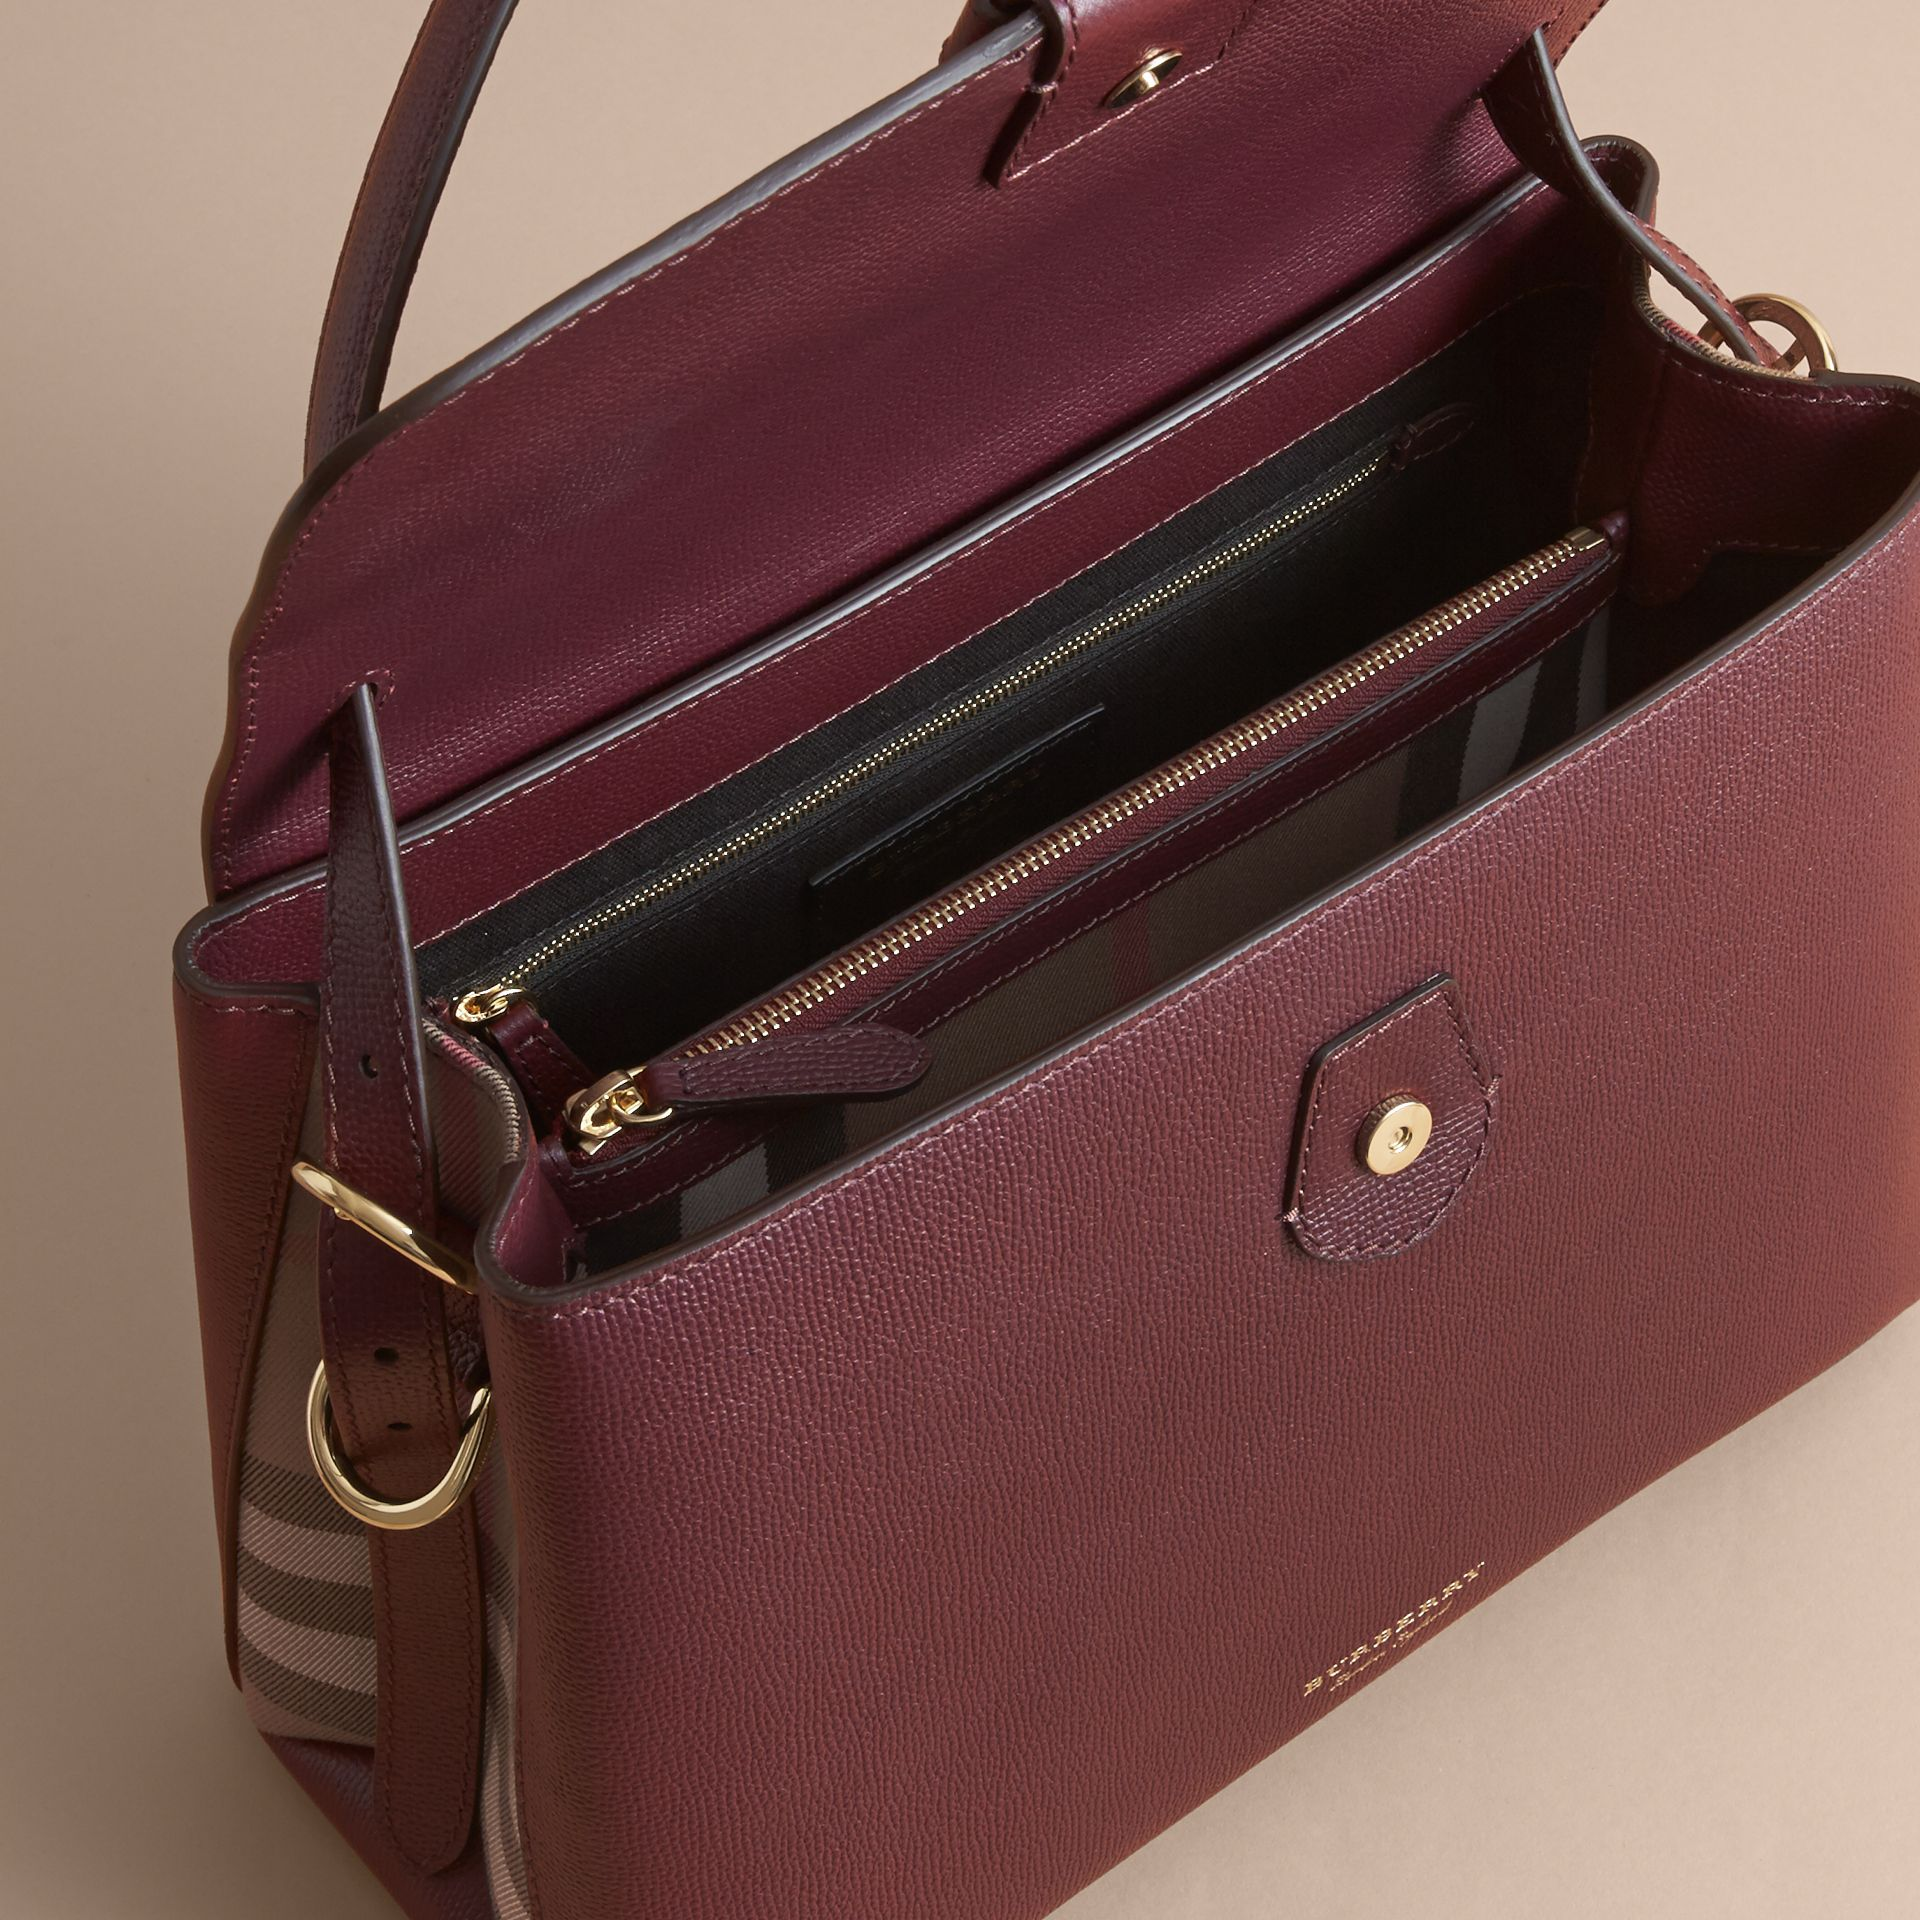 Medium Grainy Leather and House Check Tote Bag in Mahogany Red - Women | Burberry - gallery image 5